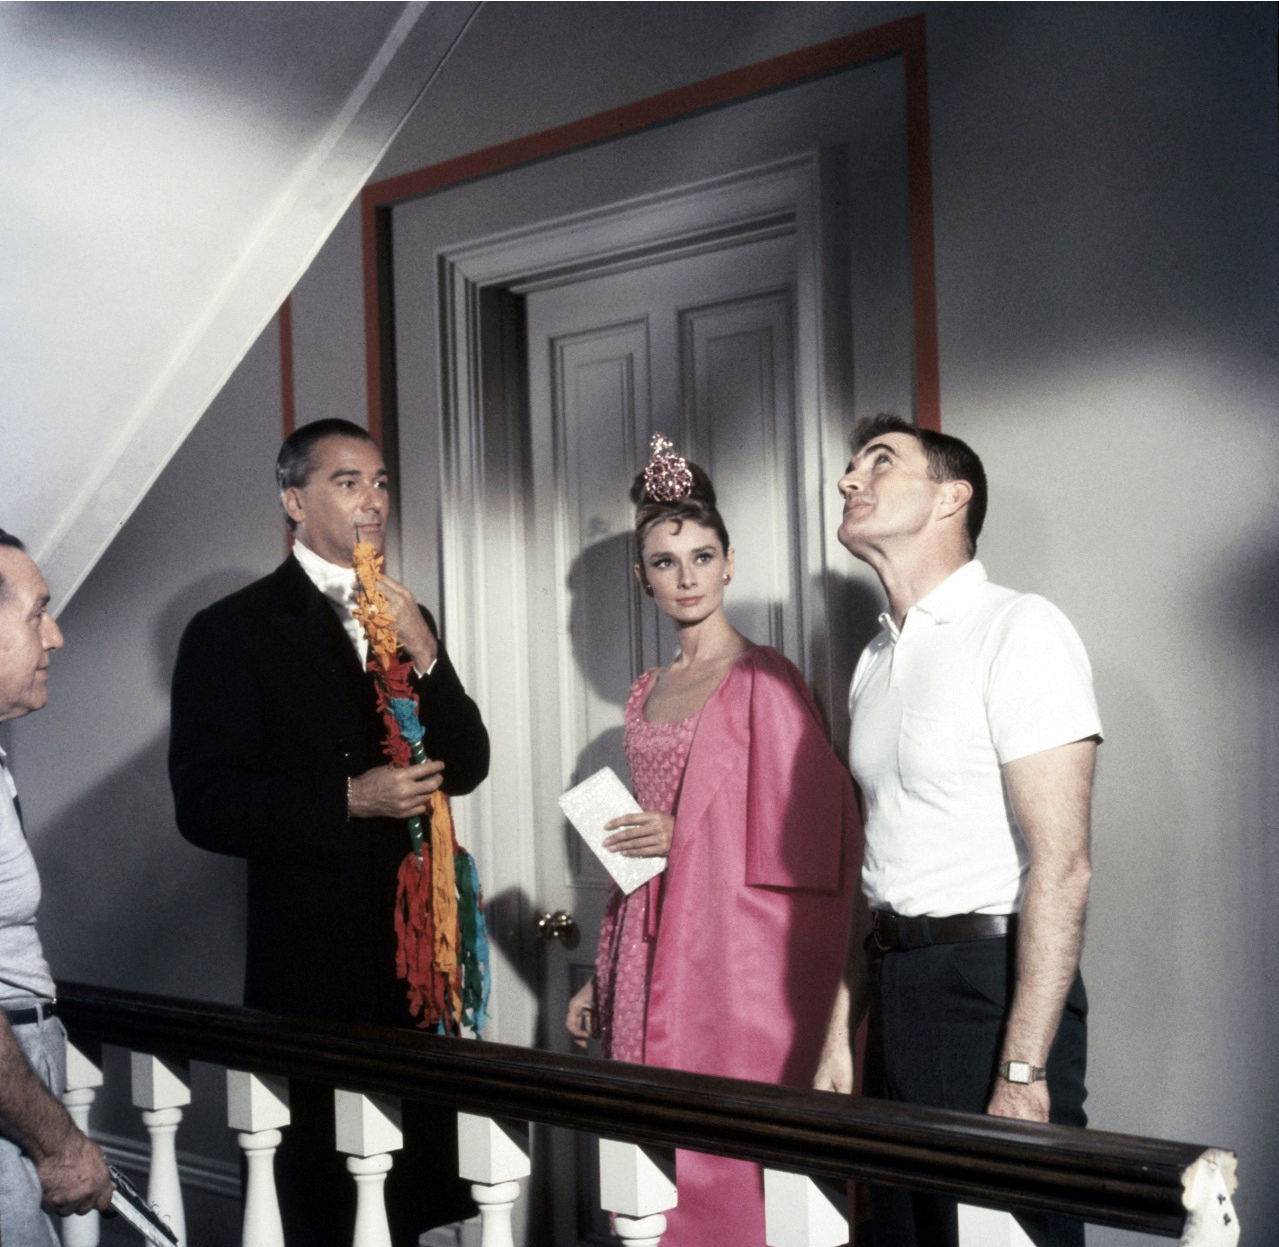 audrey-hepburn-photographed-between-the-actor-josc3a9-luis-de-vilallonga-and-the-film-director-blake-edwards-e2809cbreakfast-at-tiffany_se2809d-in-no…